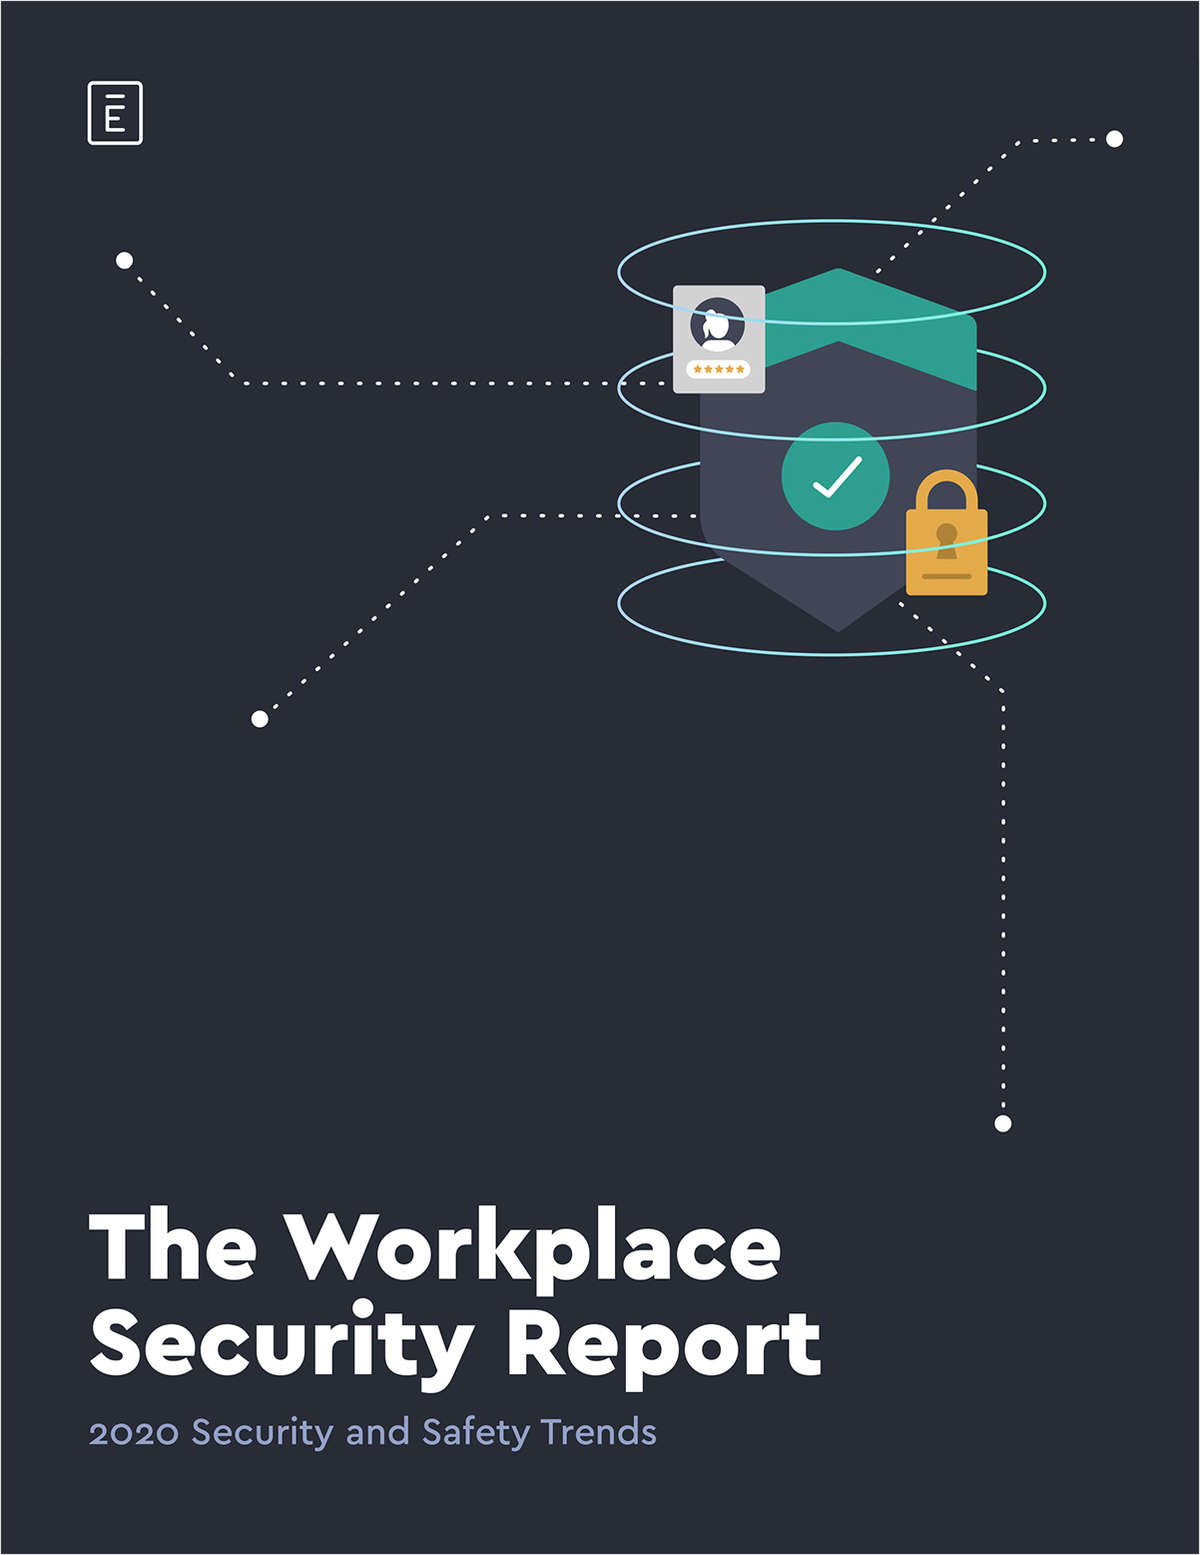 The Workplace Security Report: 2020 Security and Safety Trends